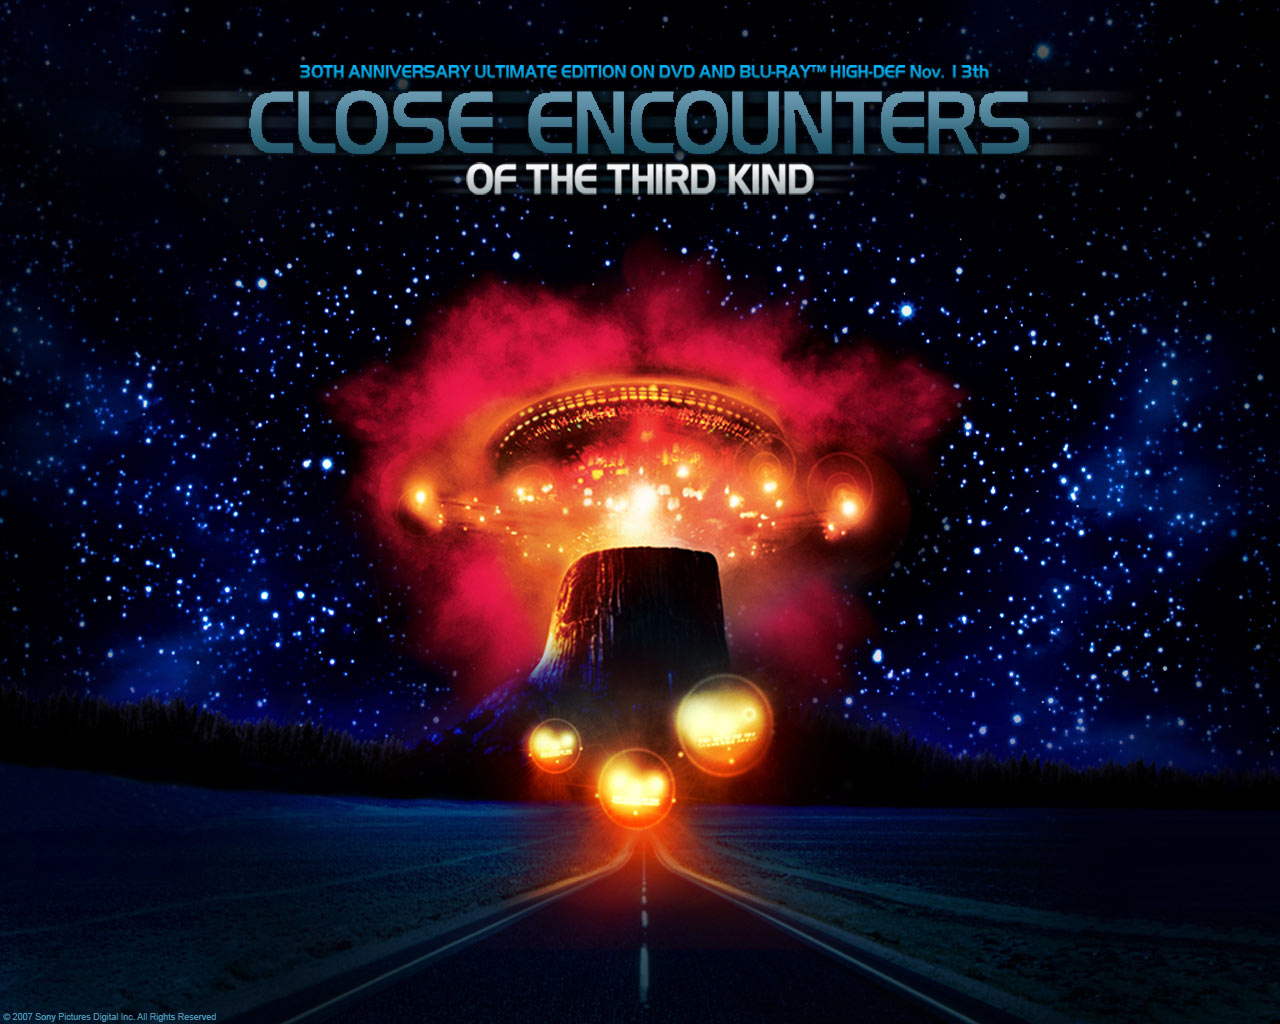 an analysis of close encounters of the third kind by teven spielberg Watch trailers, read customer and critic reviews, and buy close encounters of the third kind directed by steven spielberg for $999.